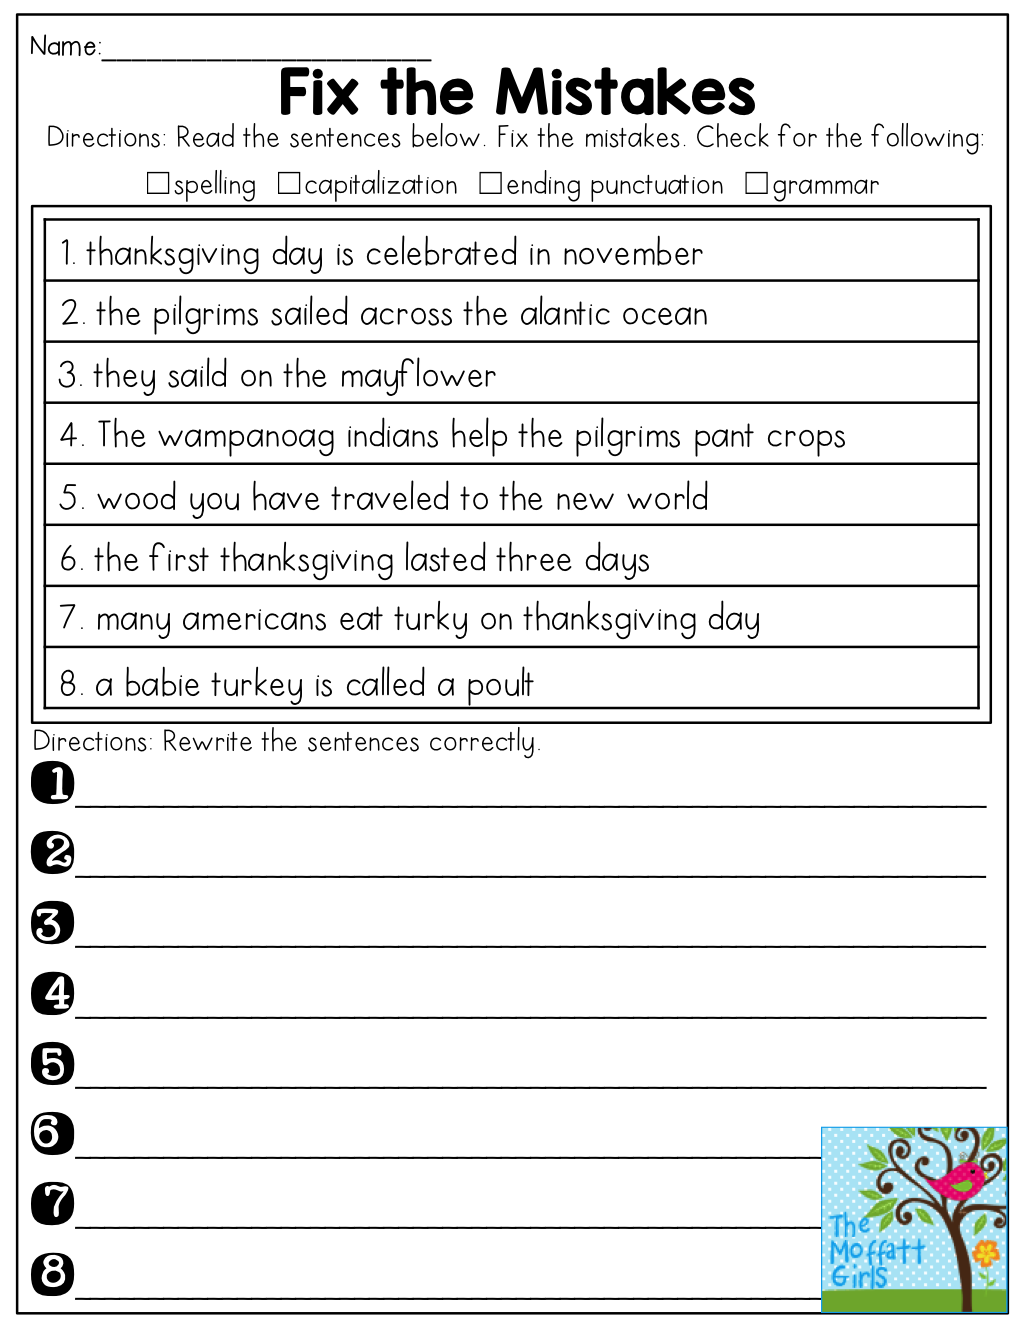 Find The Spelling Mistakes Worksheet